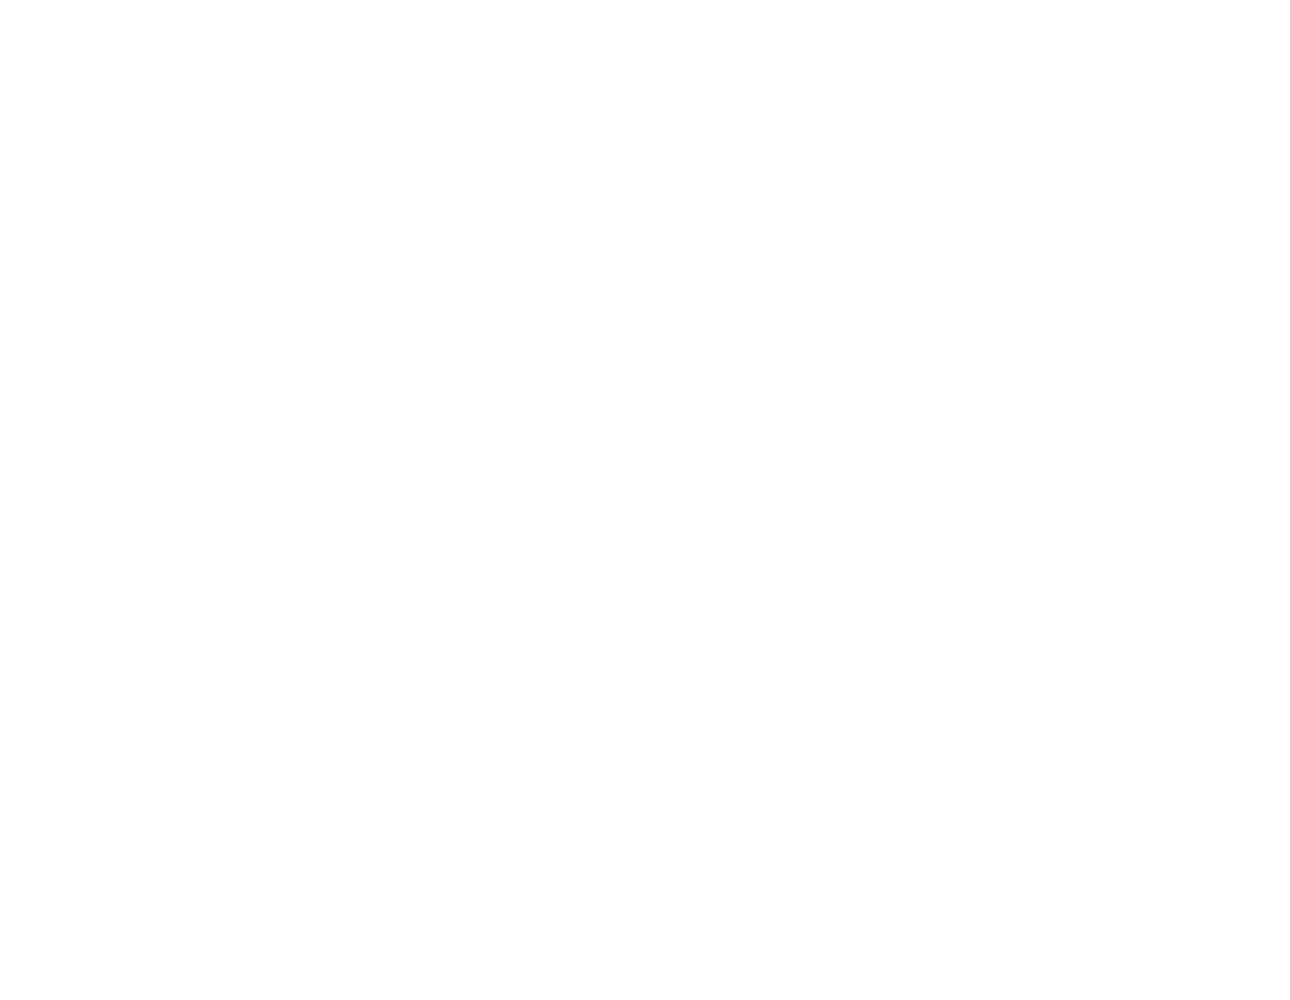 J1 - Fabulous Deal Coming Soon